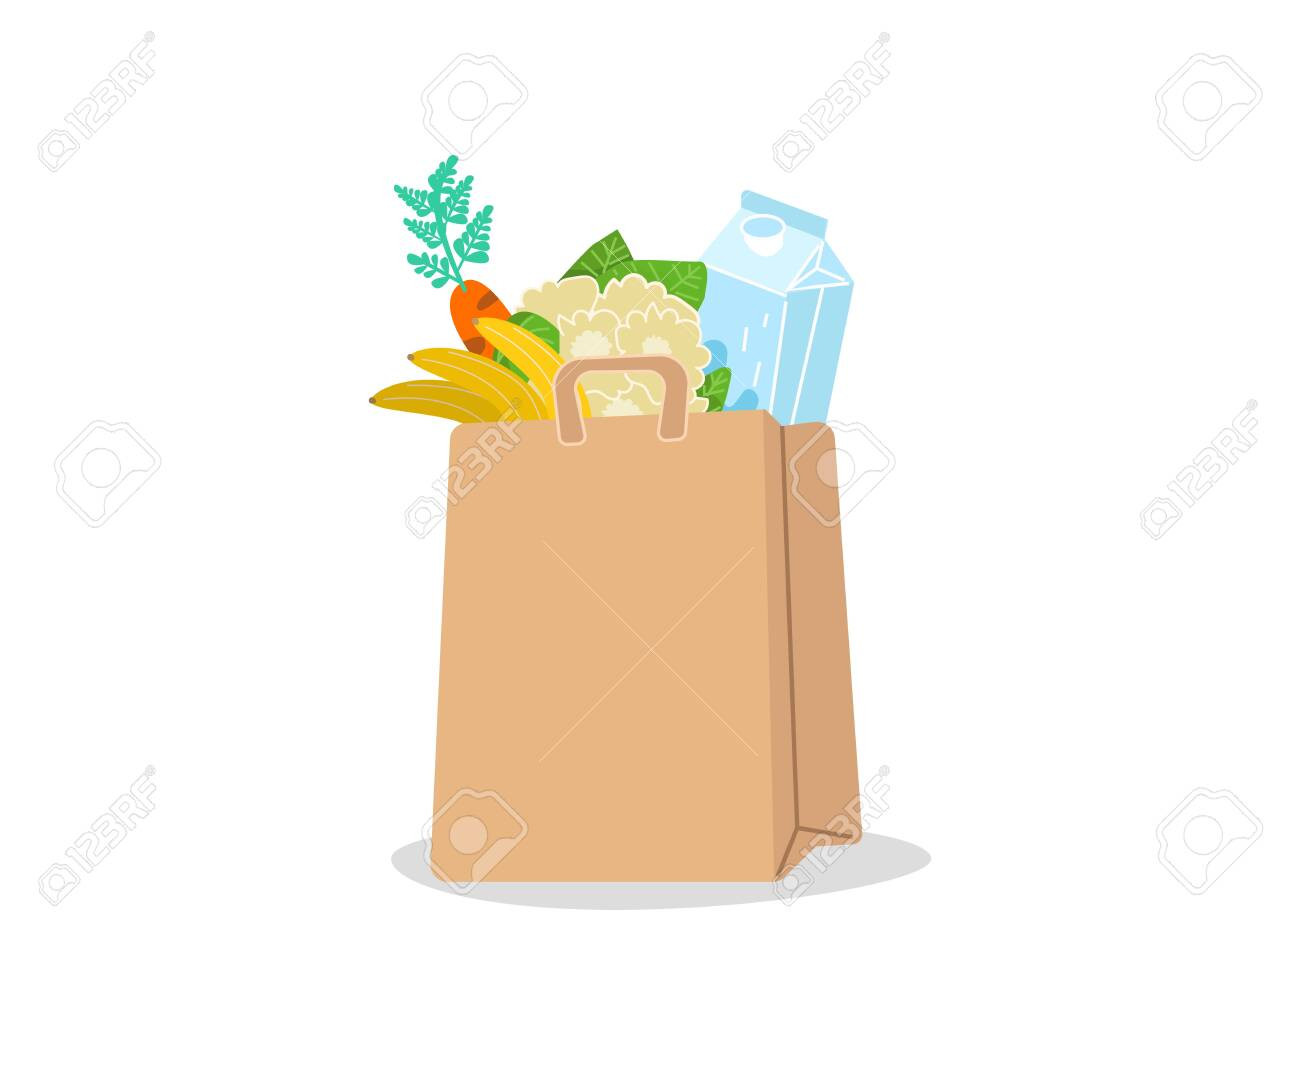 Shopping basket full of groceries products. Grocery store. Eco shopping bags and baskets with food. Vector supermarket illustration - 144558320